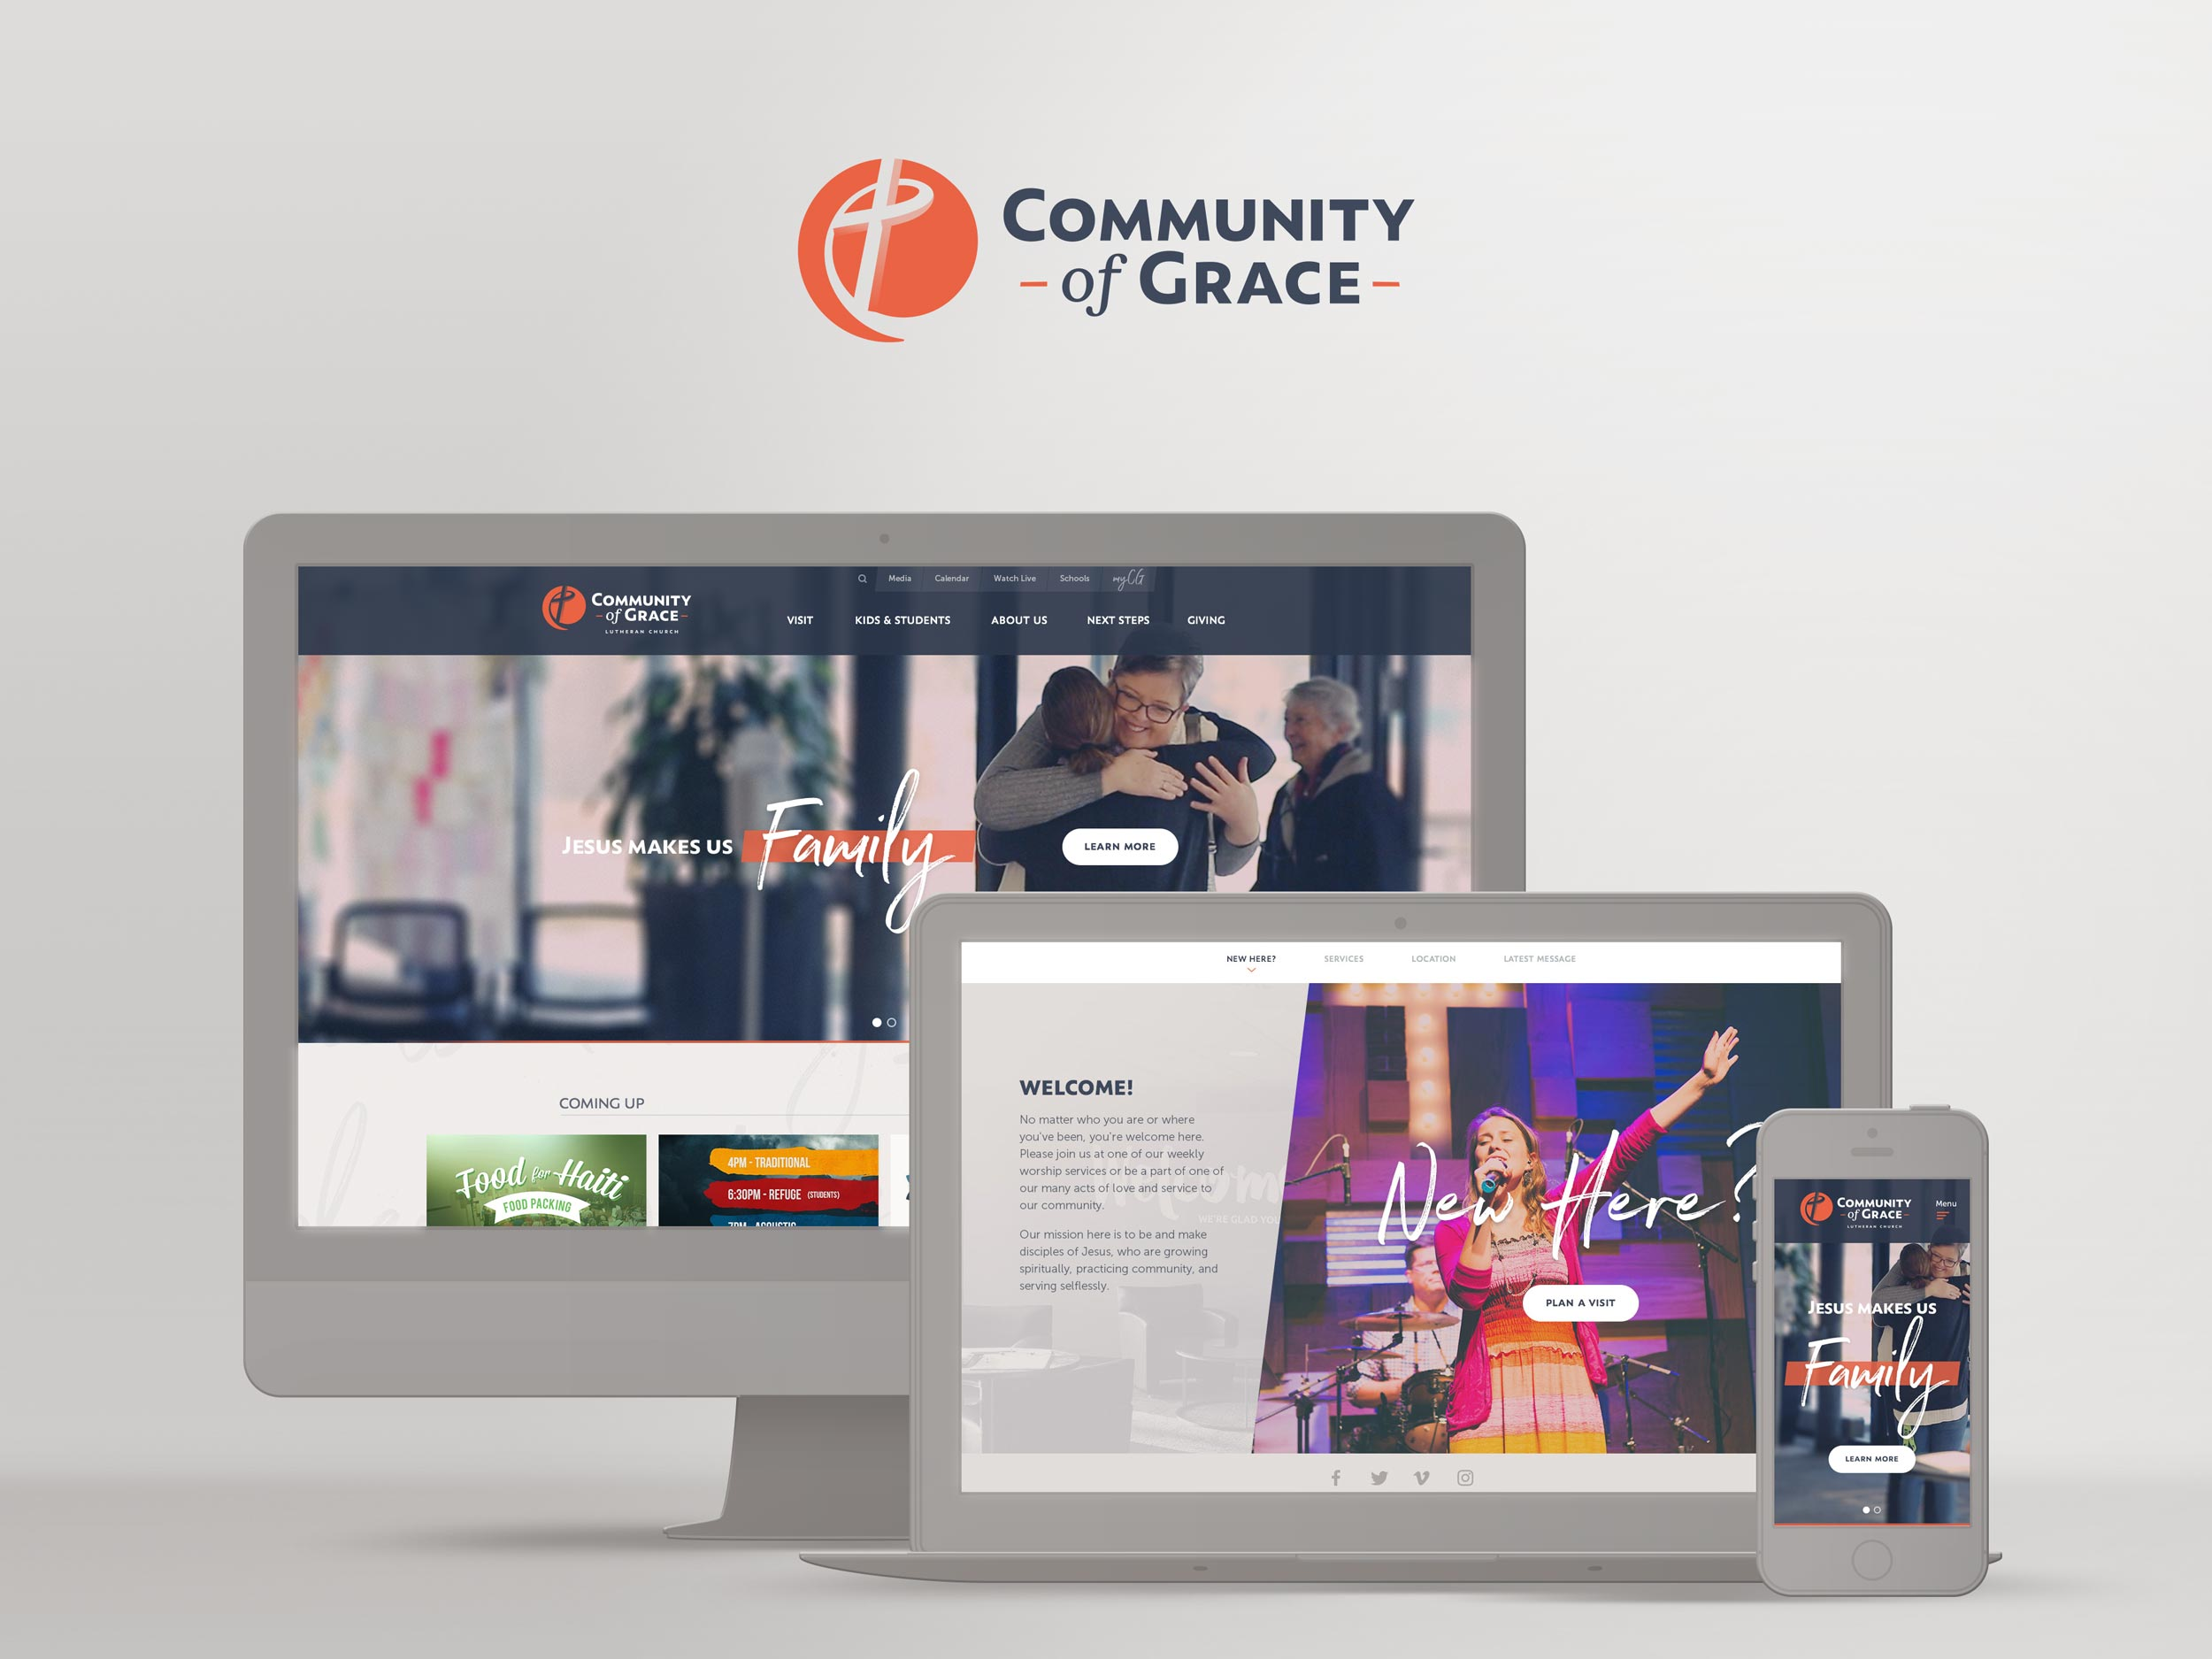 CommunityofGrace.church responsive website design by Jeff Miller, HellothisisJeff Design